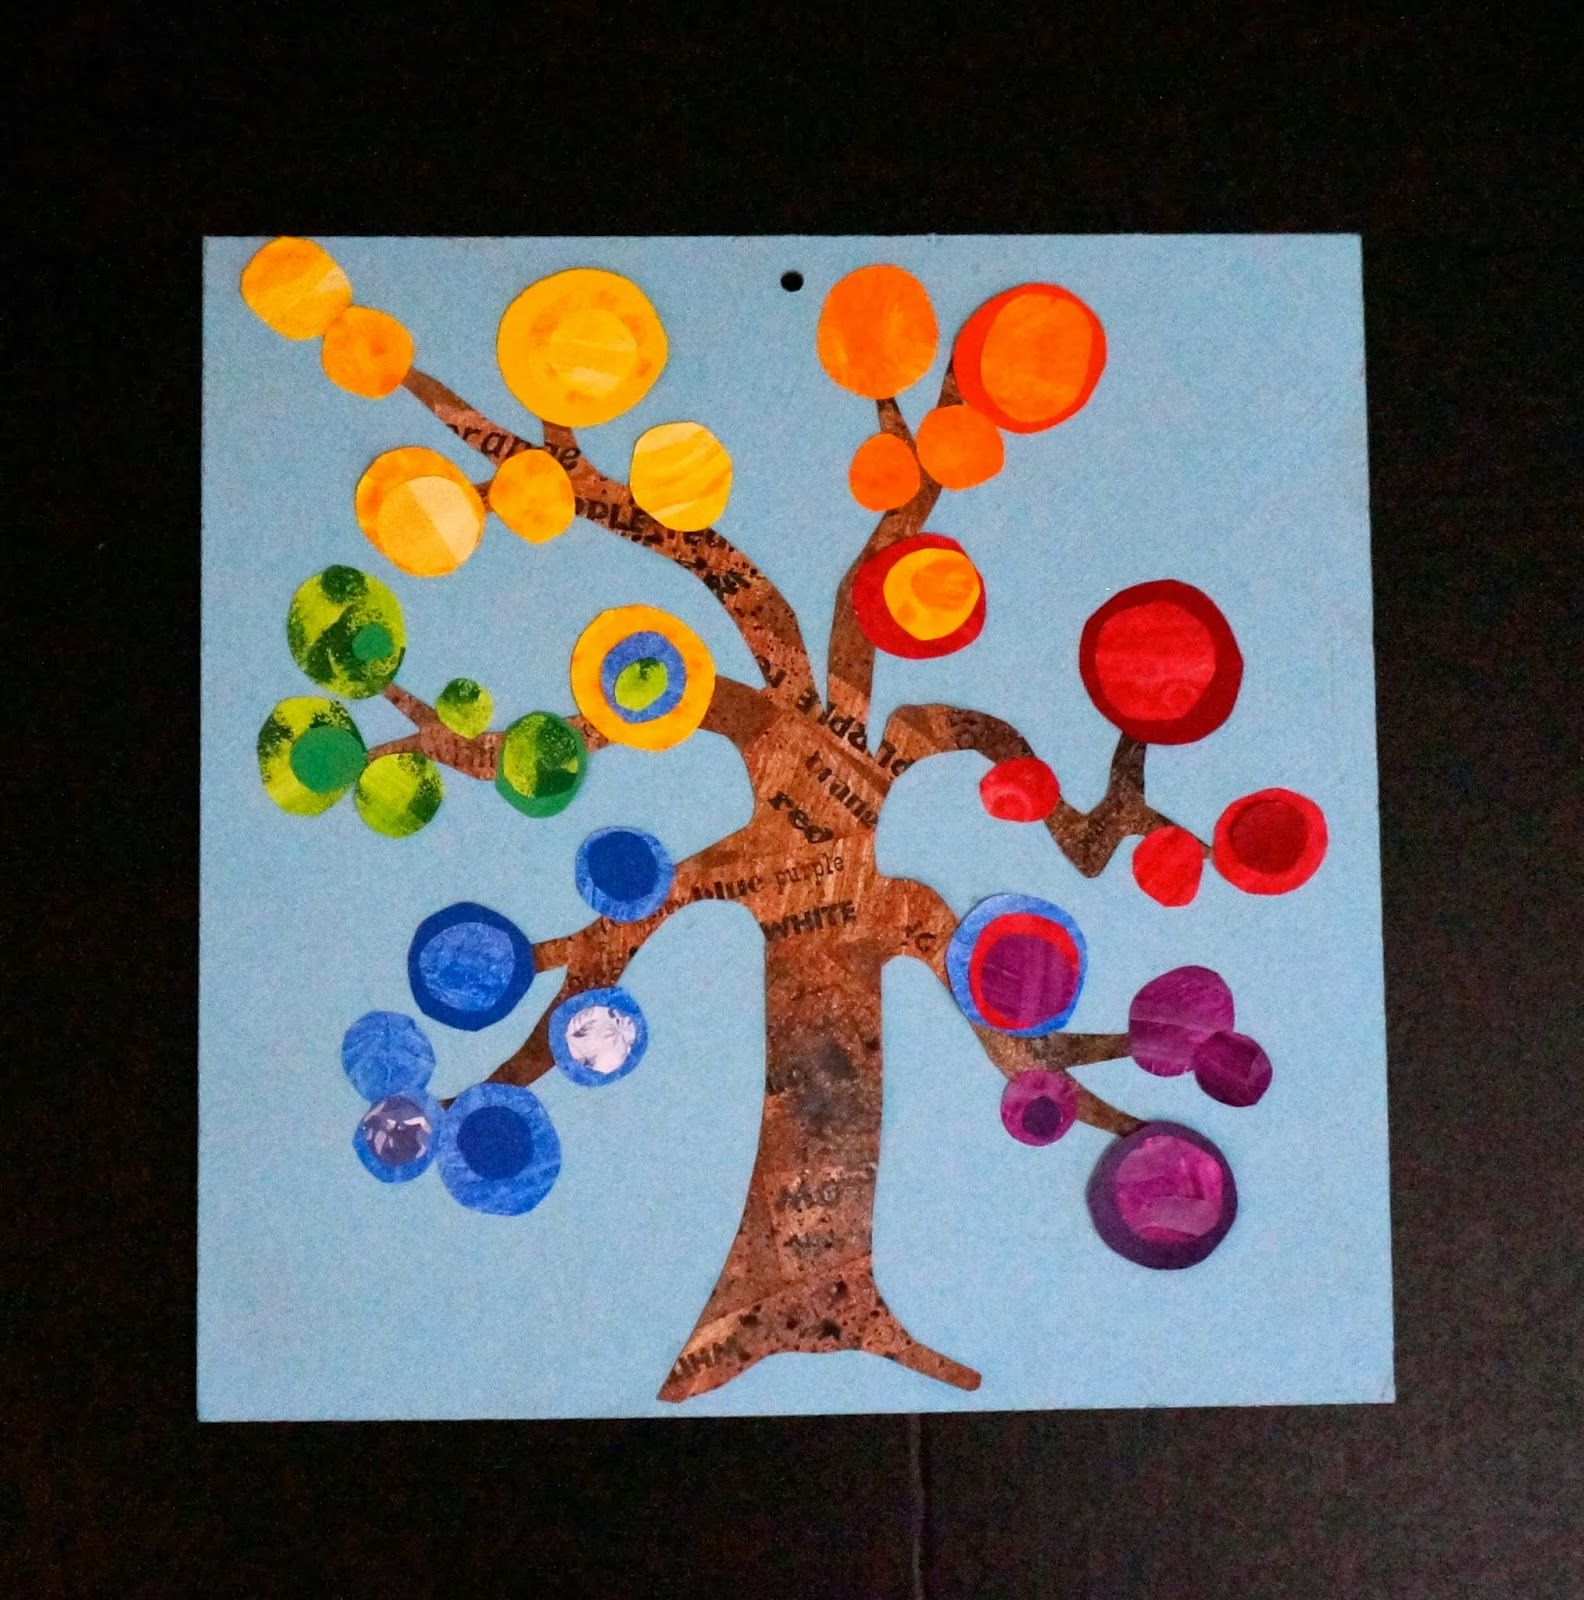 Color wheel art projects for kids - I Really Like The Idea Of A Textured Painted Paper Tree And Then The Color Wheel Colour Wheelart Project For Kidskid